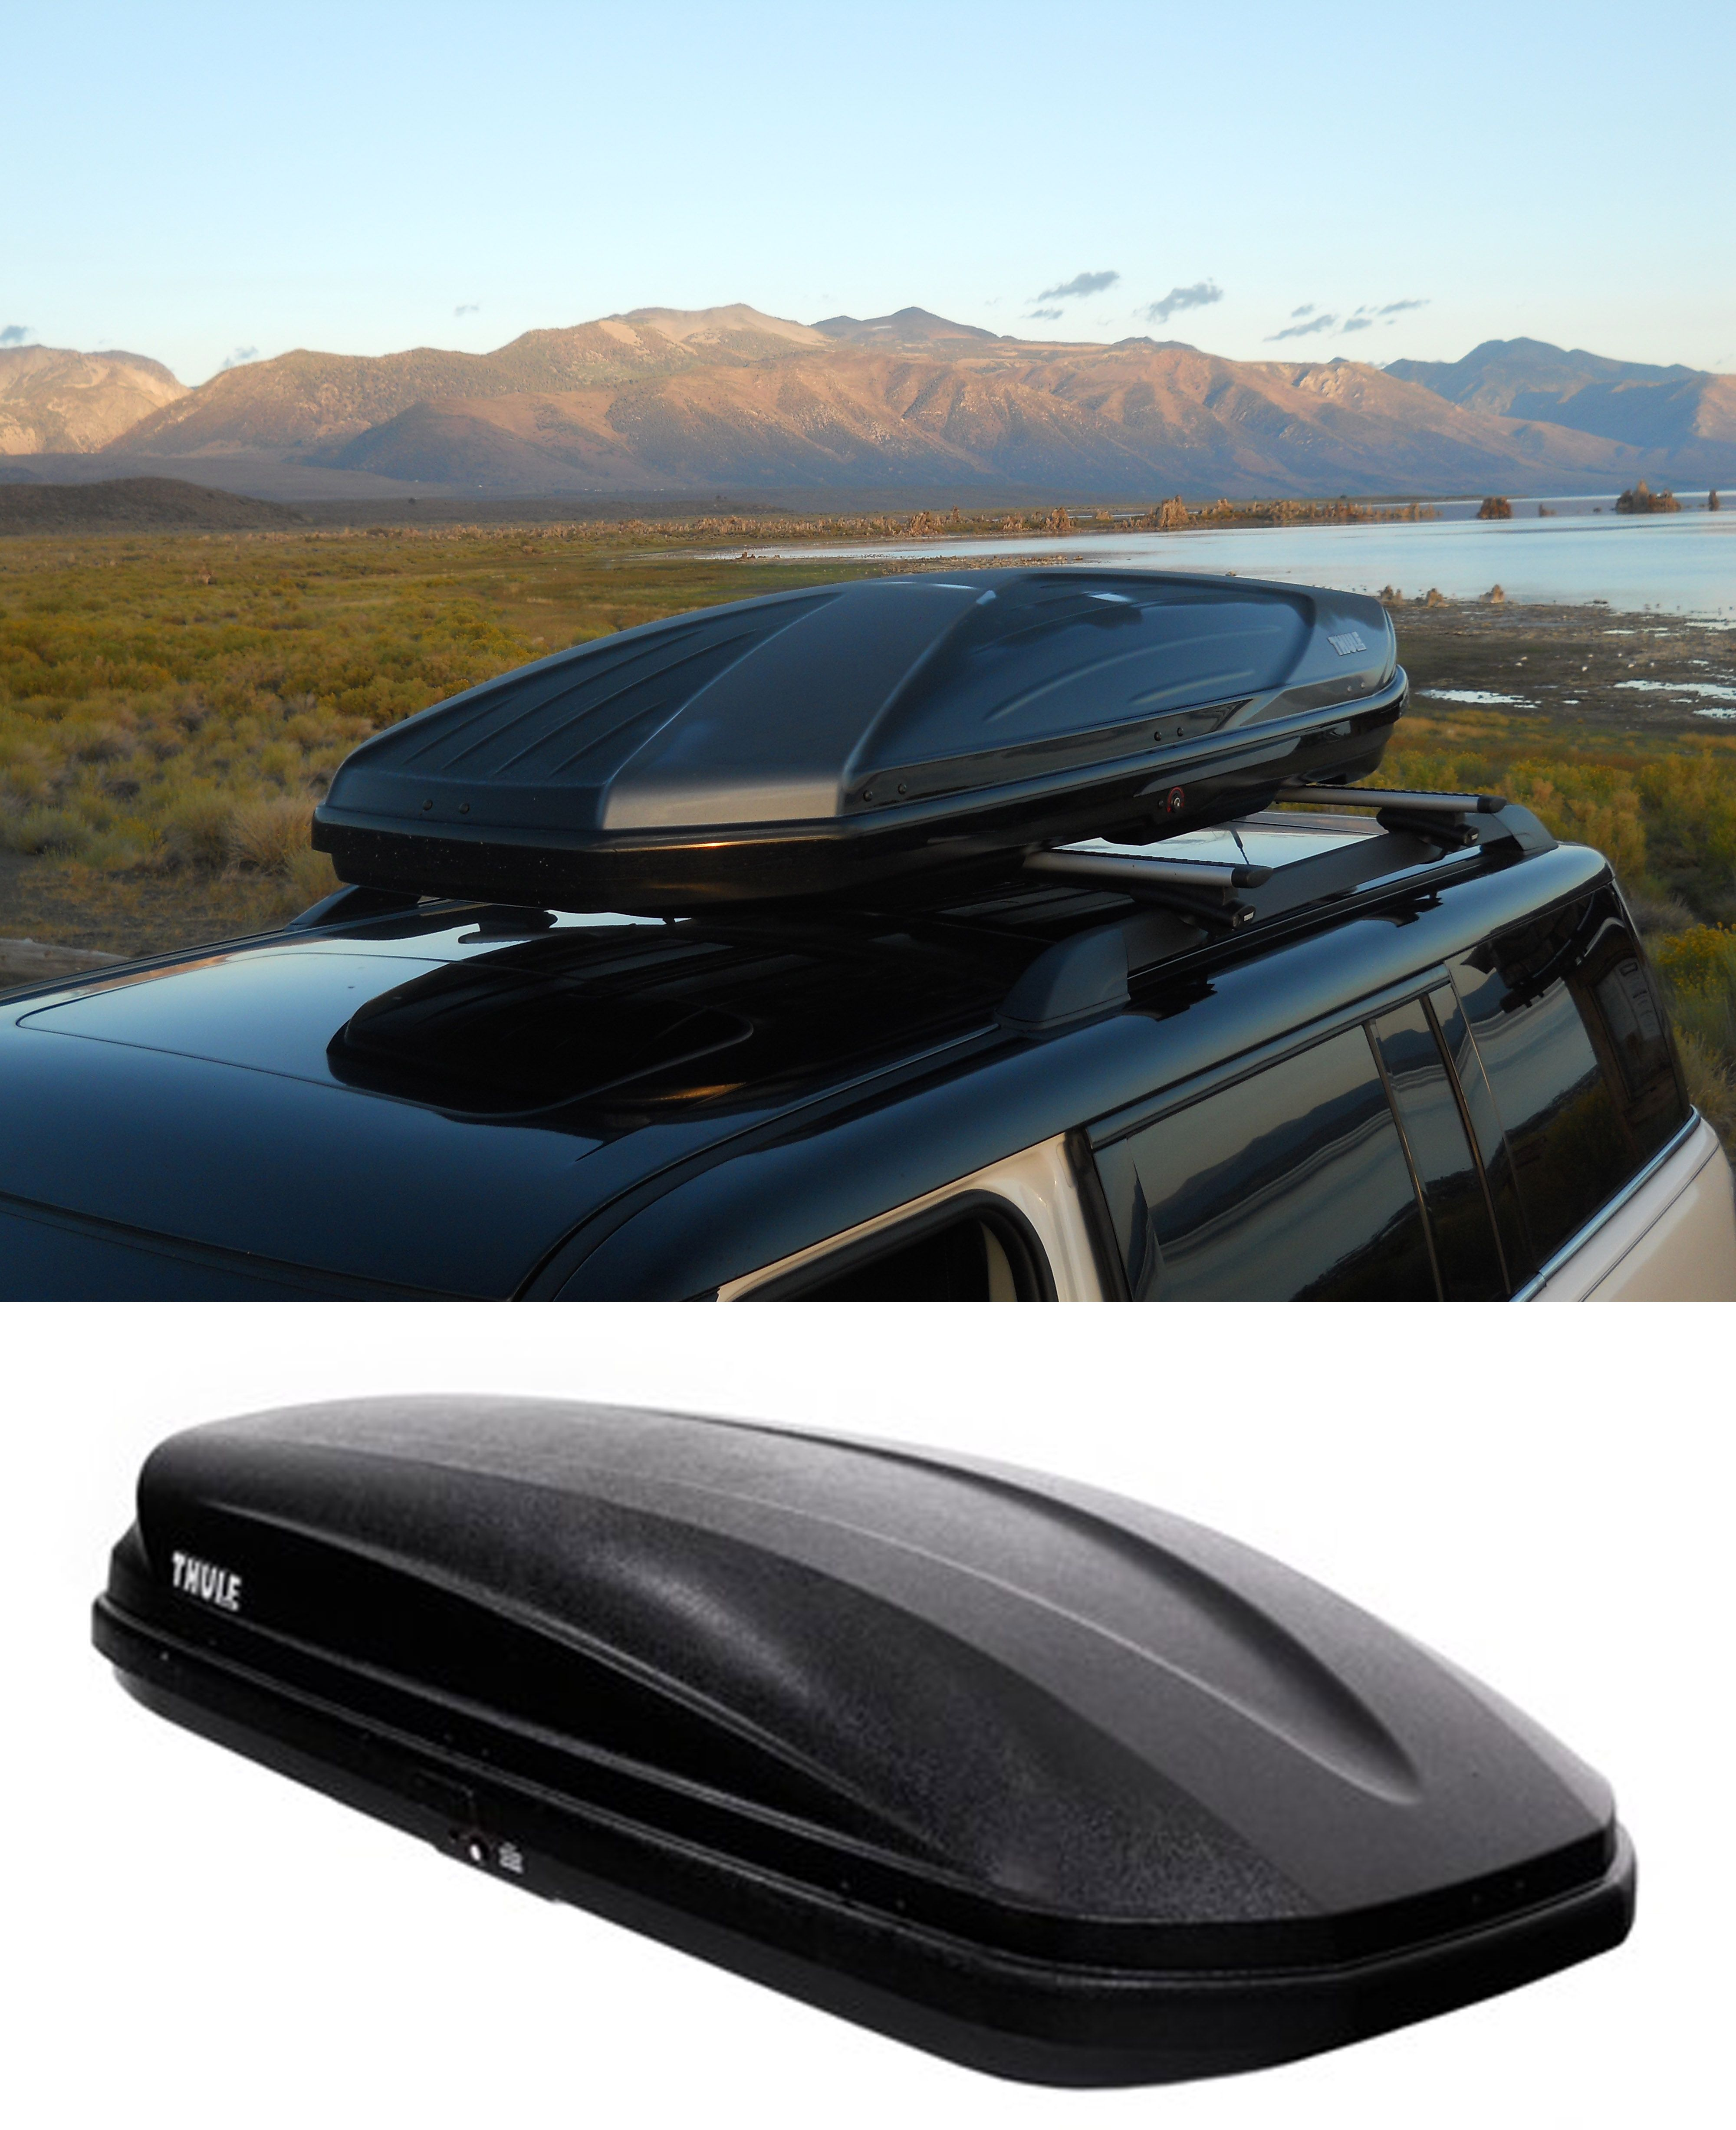 Thule Pulse Large Rooftop Cargo Box 16 Cu Ft Matte Black Thule Roof Box Th615 Roof Box Car Roof Box Thule